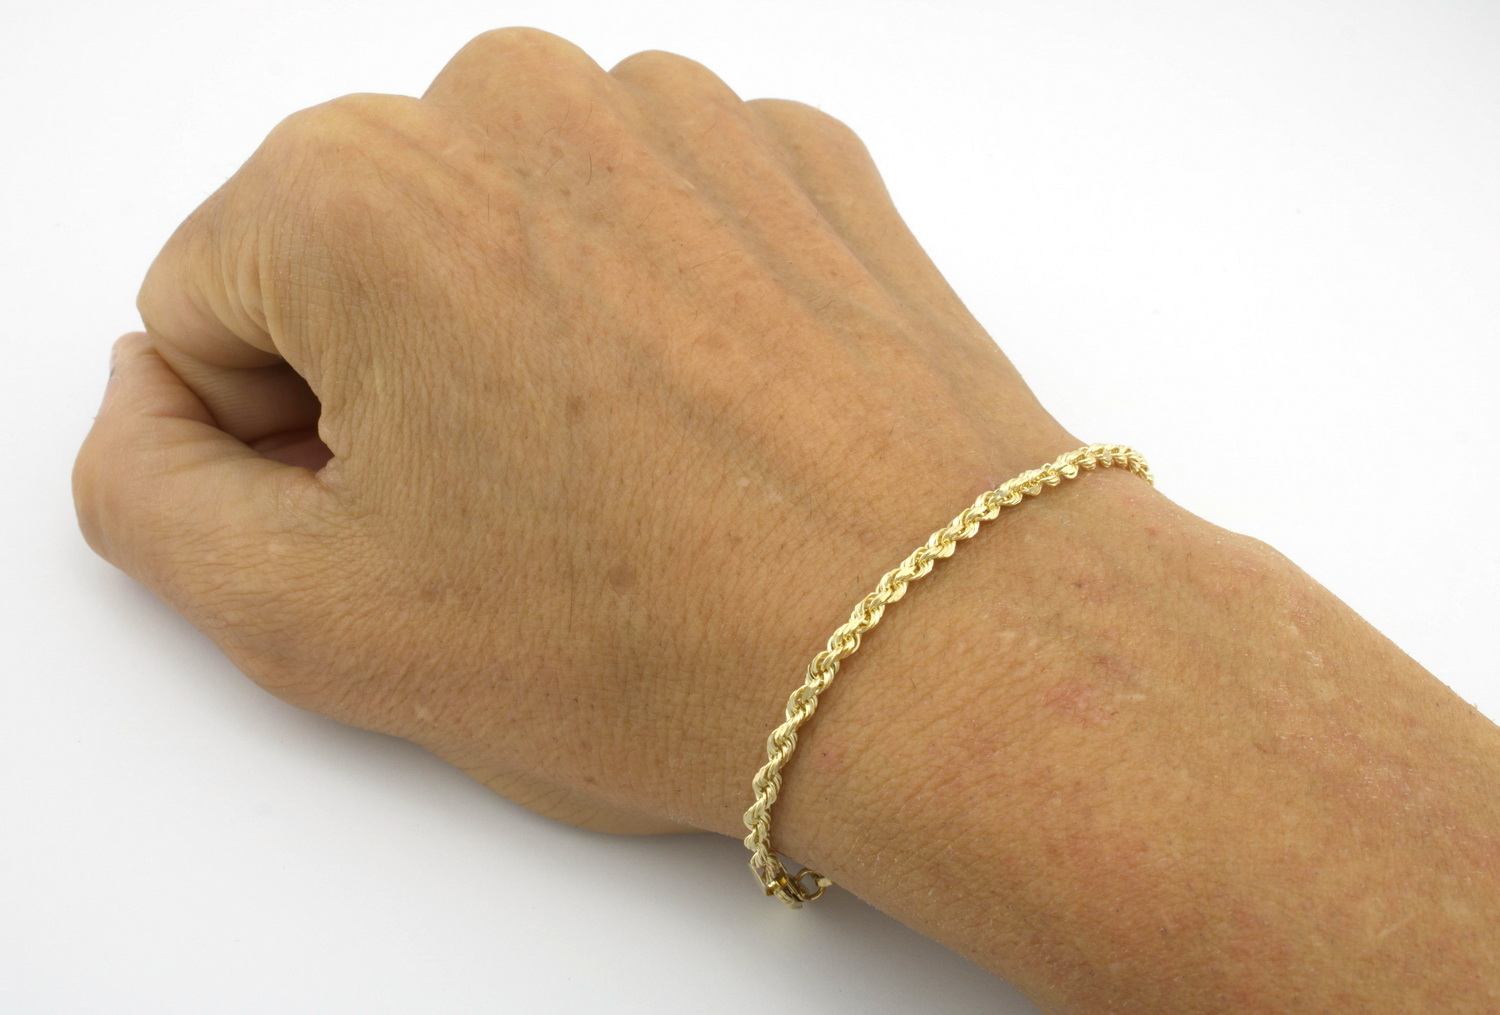 10K-Yellow-Gold-Real-3mm-Diamond-Cut-Rope-Chain-Bracelet-Lobster-Clasp-7-034-8-034-9-034 thumbnail 13